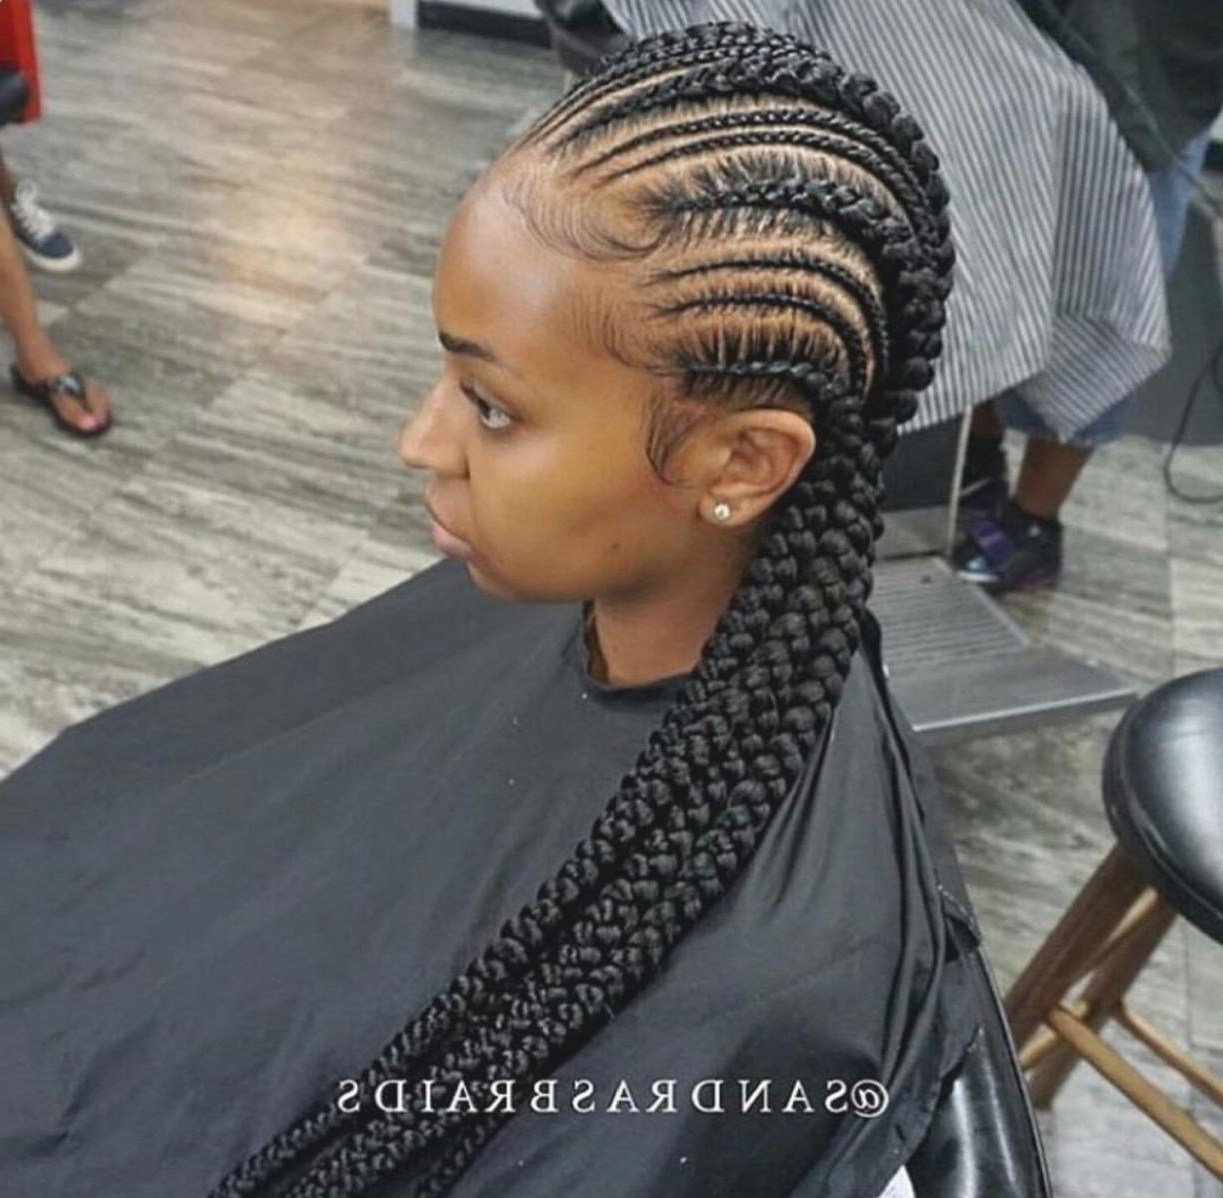 Beautiful Big Cornrows Hairstyles Image Of Braided Hairstyles Style Inside Most Recent Cornrow Braids Hairstyles (View 6 of 20)